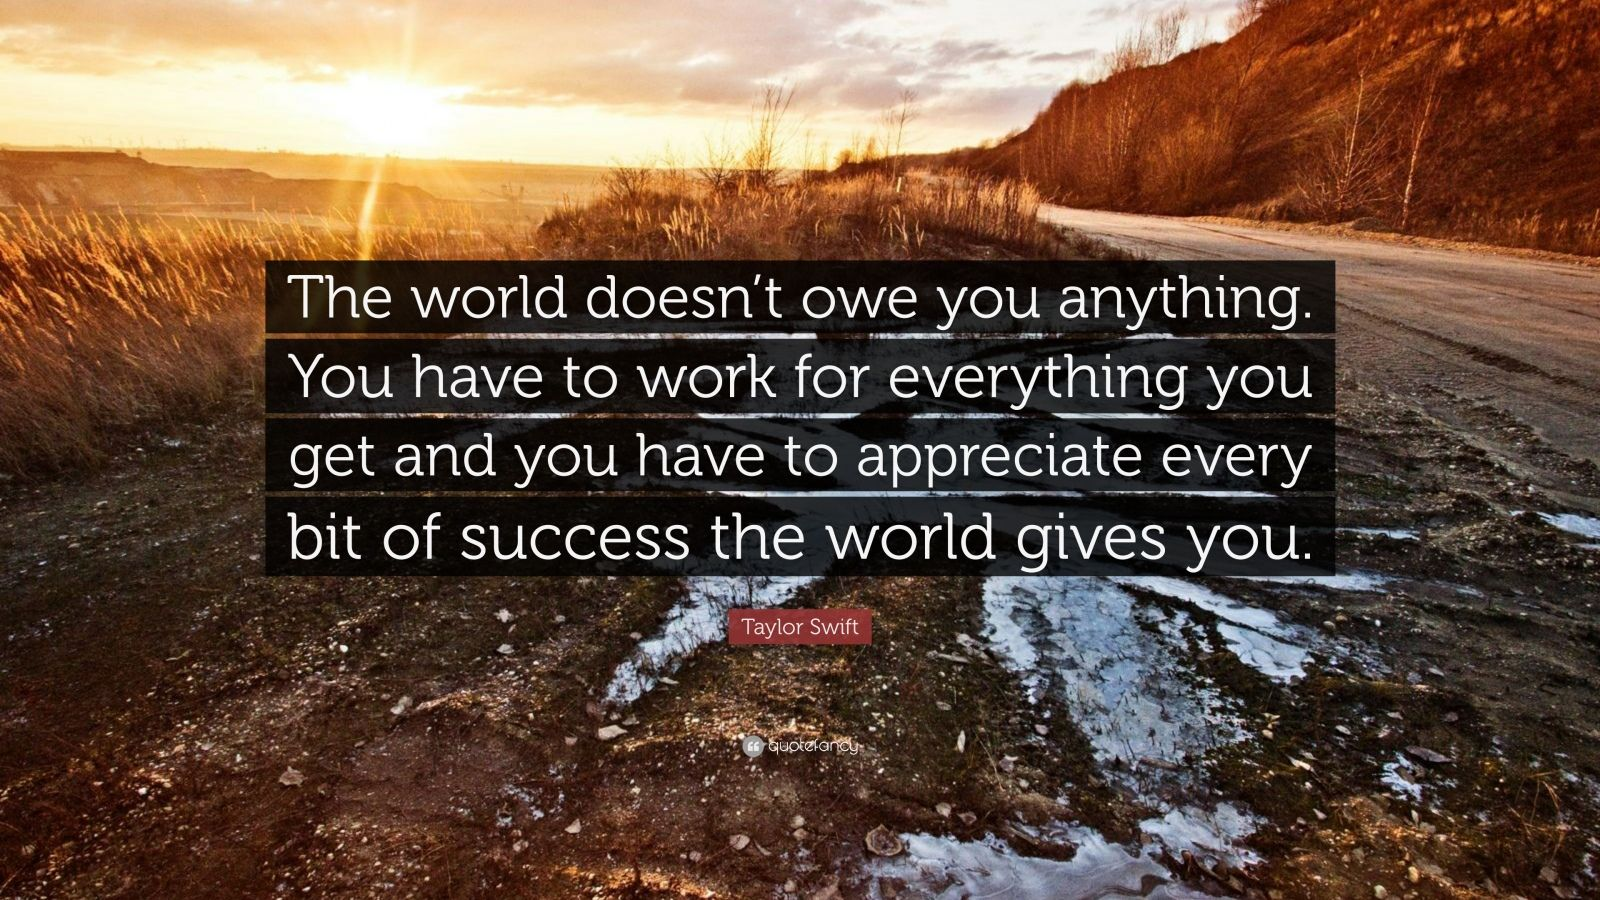 """Taylor Swift Quote: """"The world doesn't owe you anything. You have to work for everything you get and you have to appreciate every bit of success the world gives you."""""""